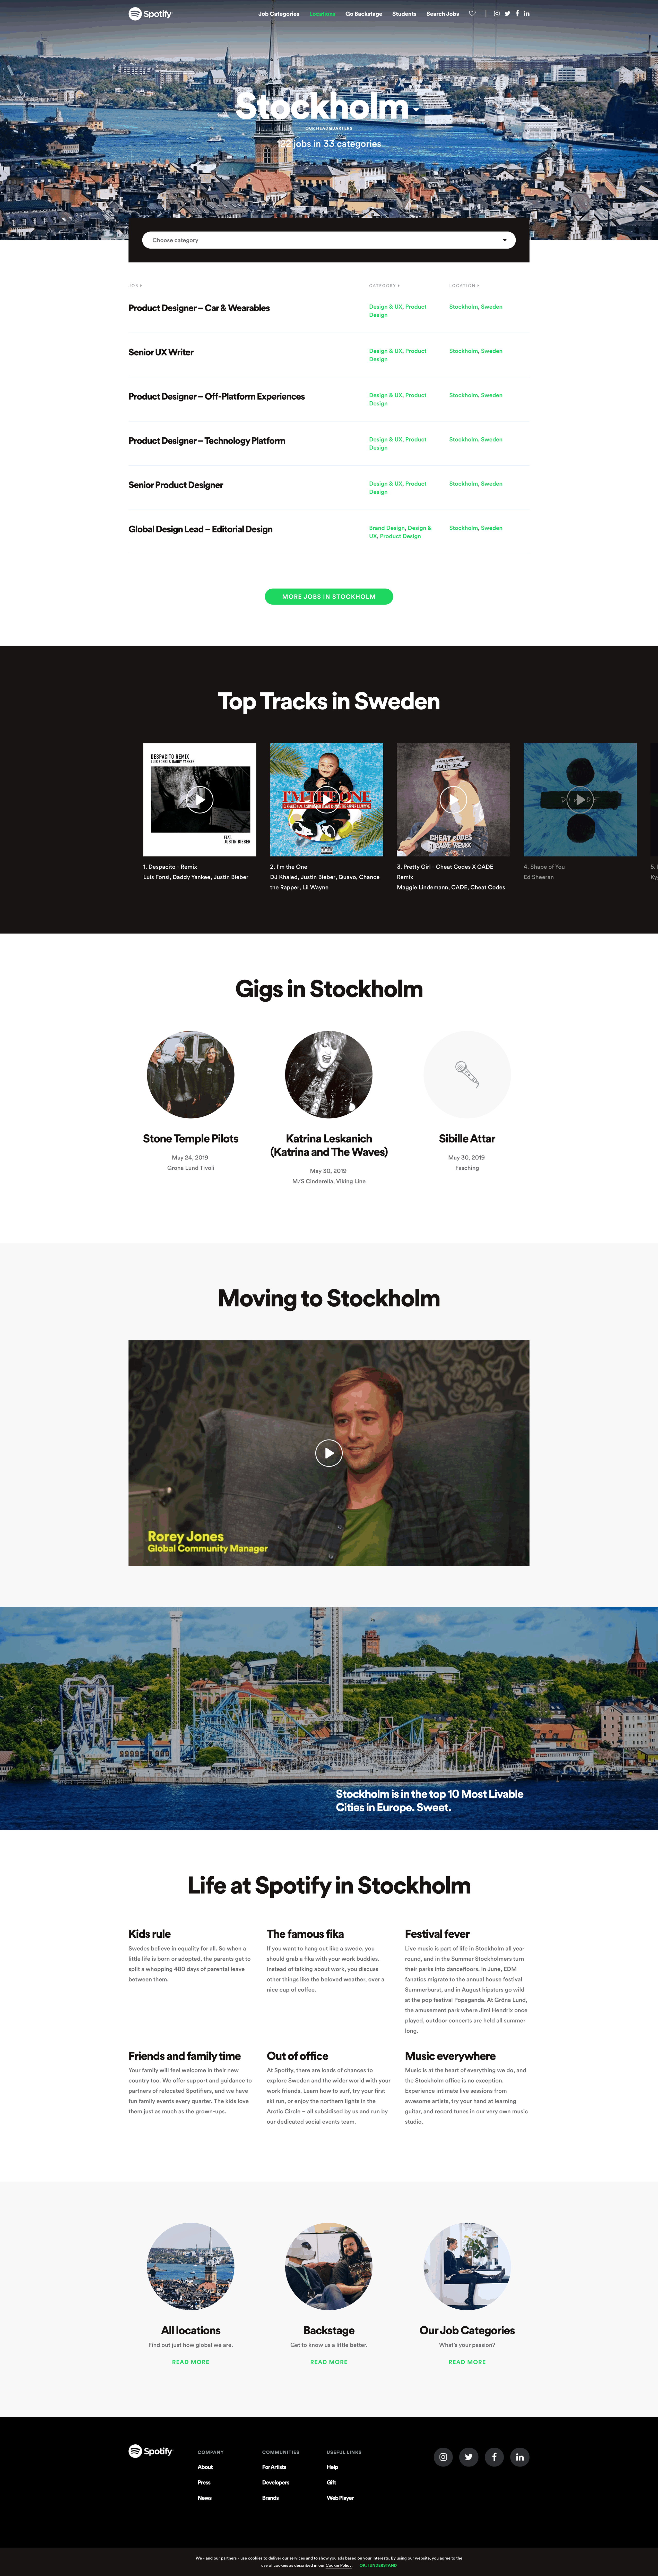 Join Us: Stockholm by Spotify